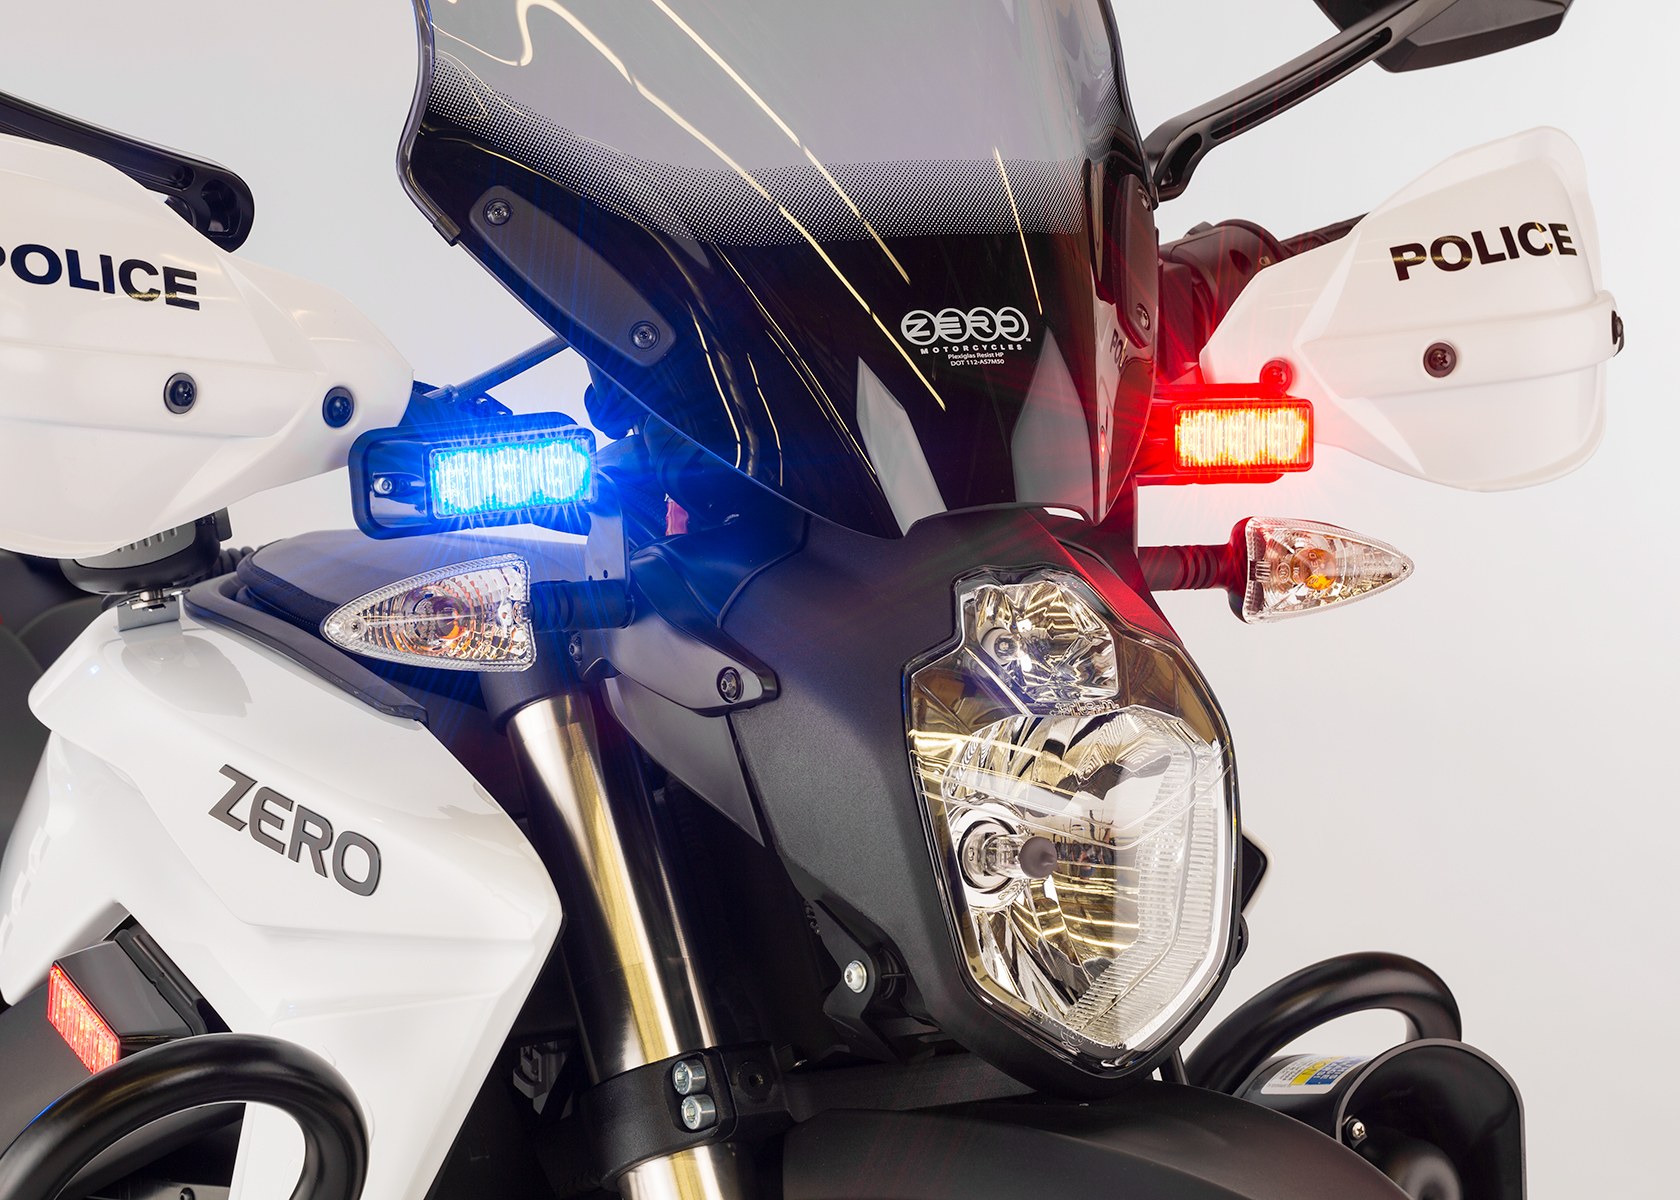 2014 Zero Police Electric Motorcycle: Front view, Lights on